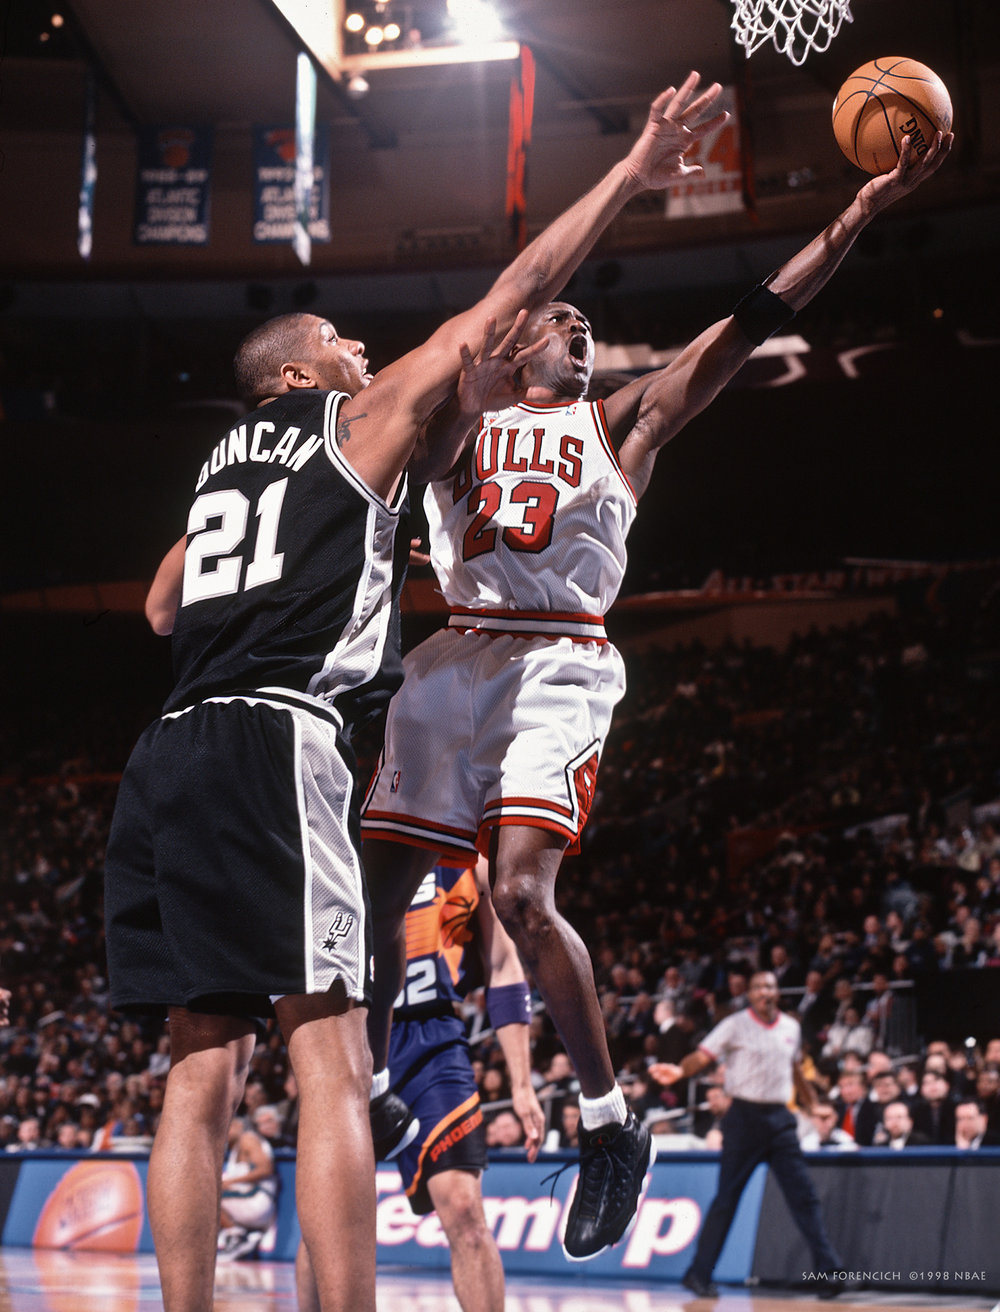 New York City, NY - Michael Jordan #23 of the Eastern Conference All-Stars goes up against Tim Duncan #21 of the Western Conference All-Stars during the 1998 NBA All-Star Game on February 8, 1998 at Madison Square Garden. Manually focused Hasselblad, RDP 100 film, arena strobe lighting.  Sam Forencich ©1998 NBAE